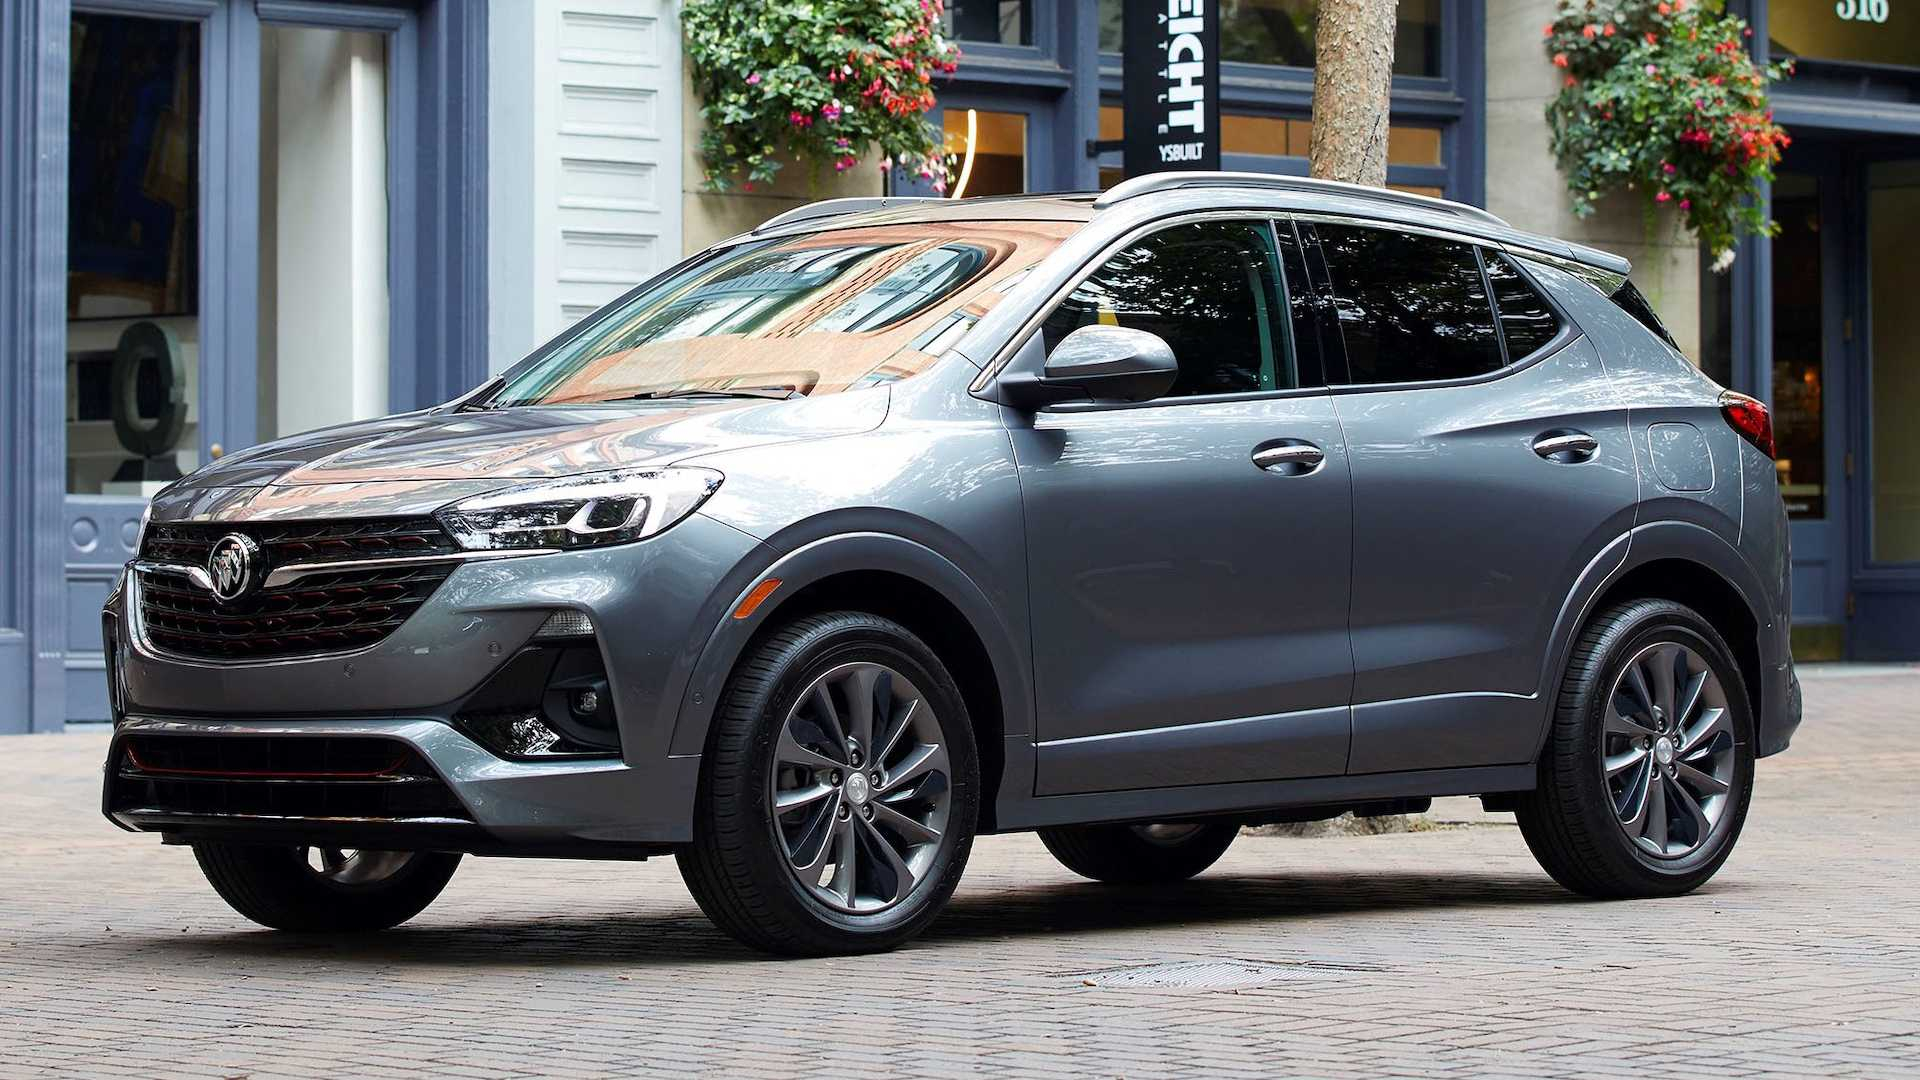 2021 Buick Encore Gx Details Emerge: Styling Tweaks, More Tech When Will The New 2021 Buick Encore Gx Be Available